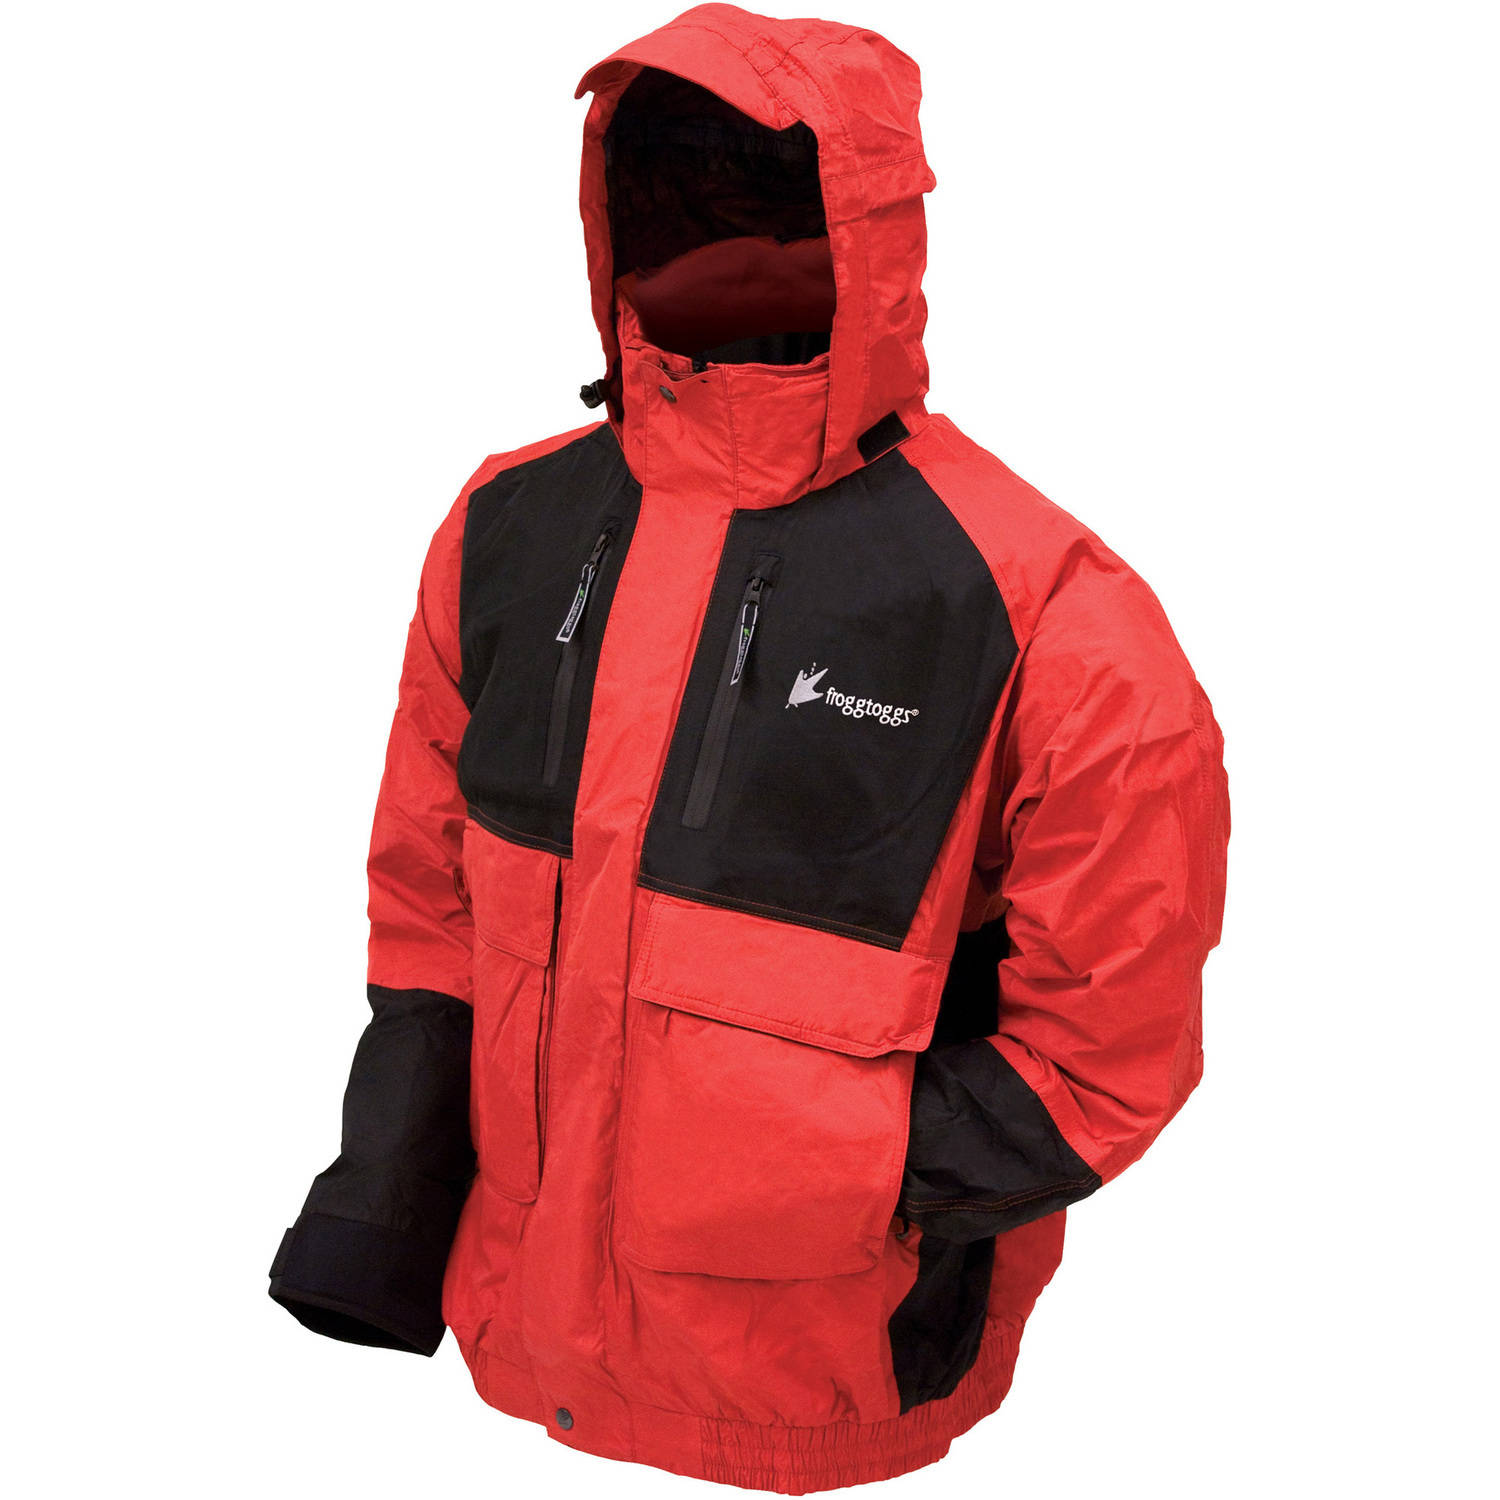 Firebelly Toadz Jacket, Black/Red